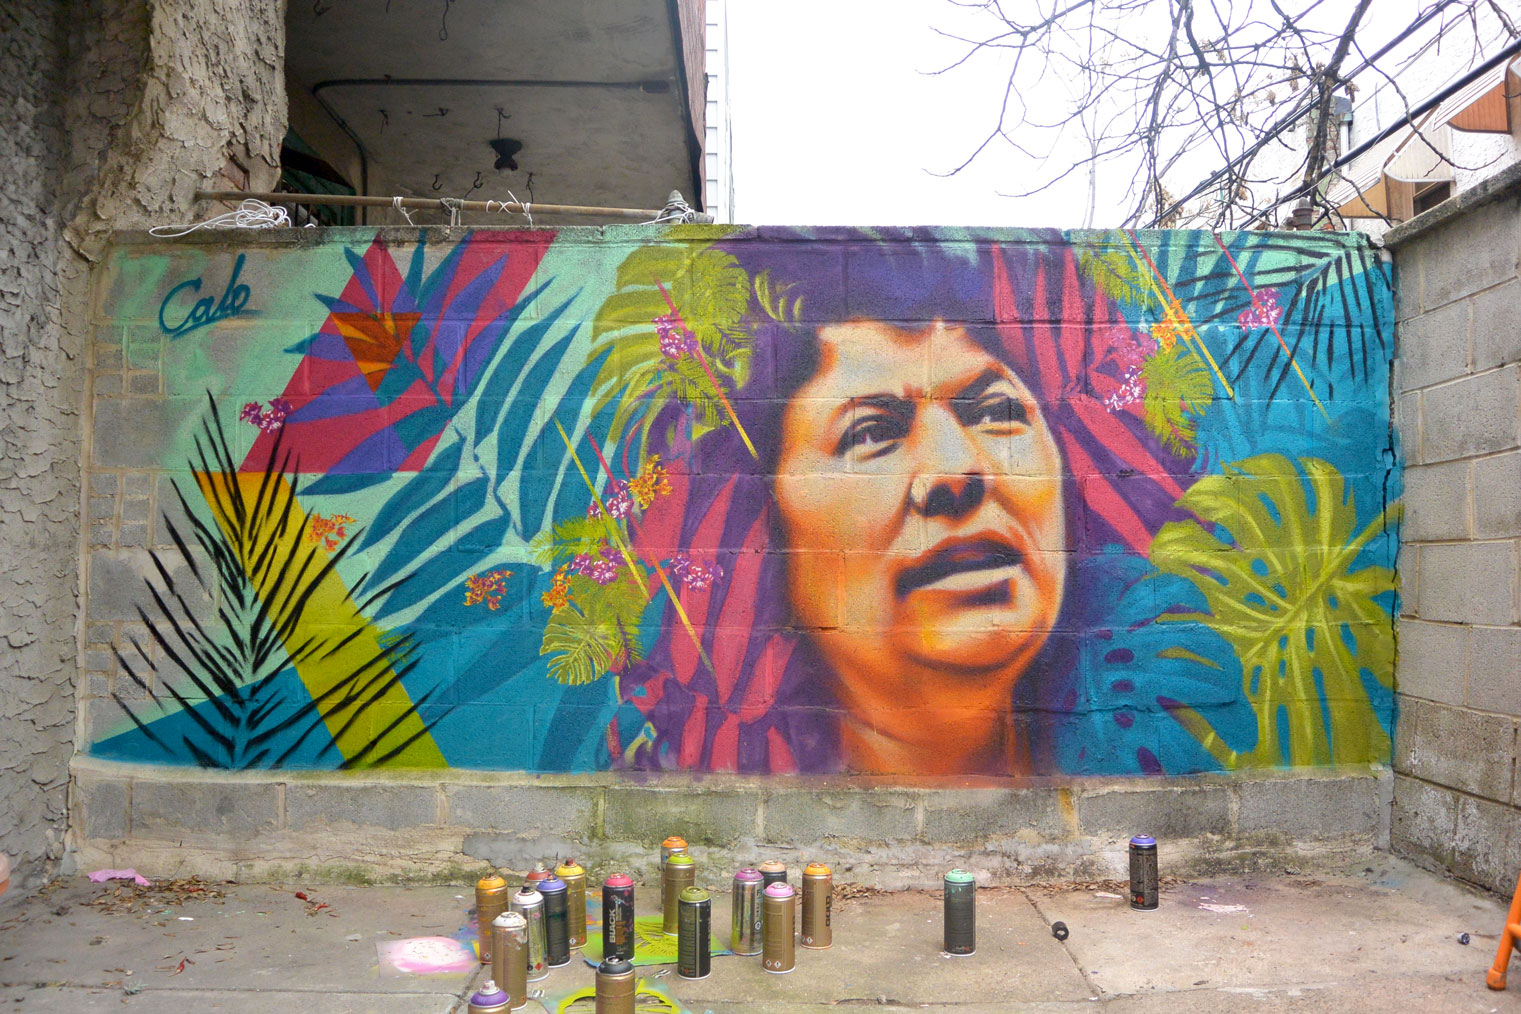 A portrait of activist Berta Cáceres by Calo on the streets of Philadelphia. Courtesy of the artist.